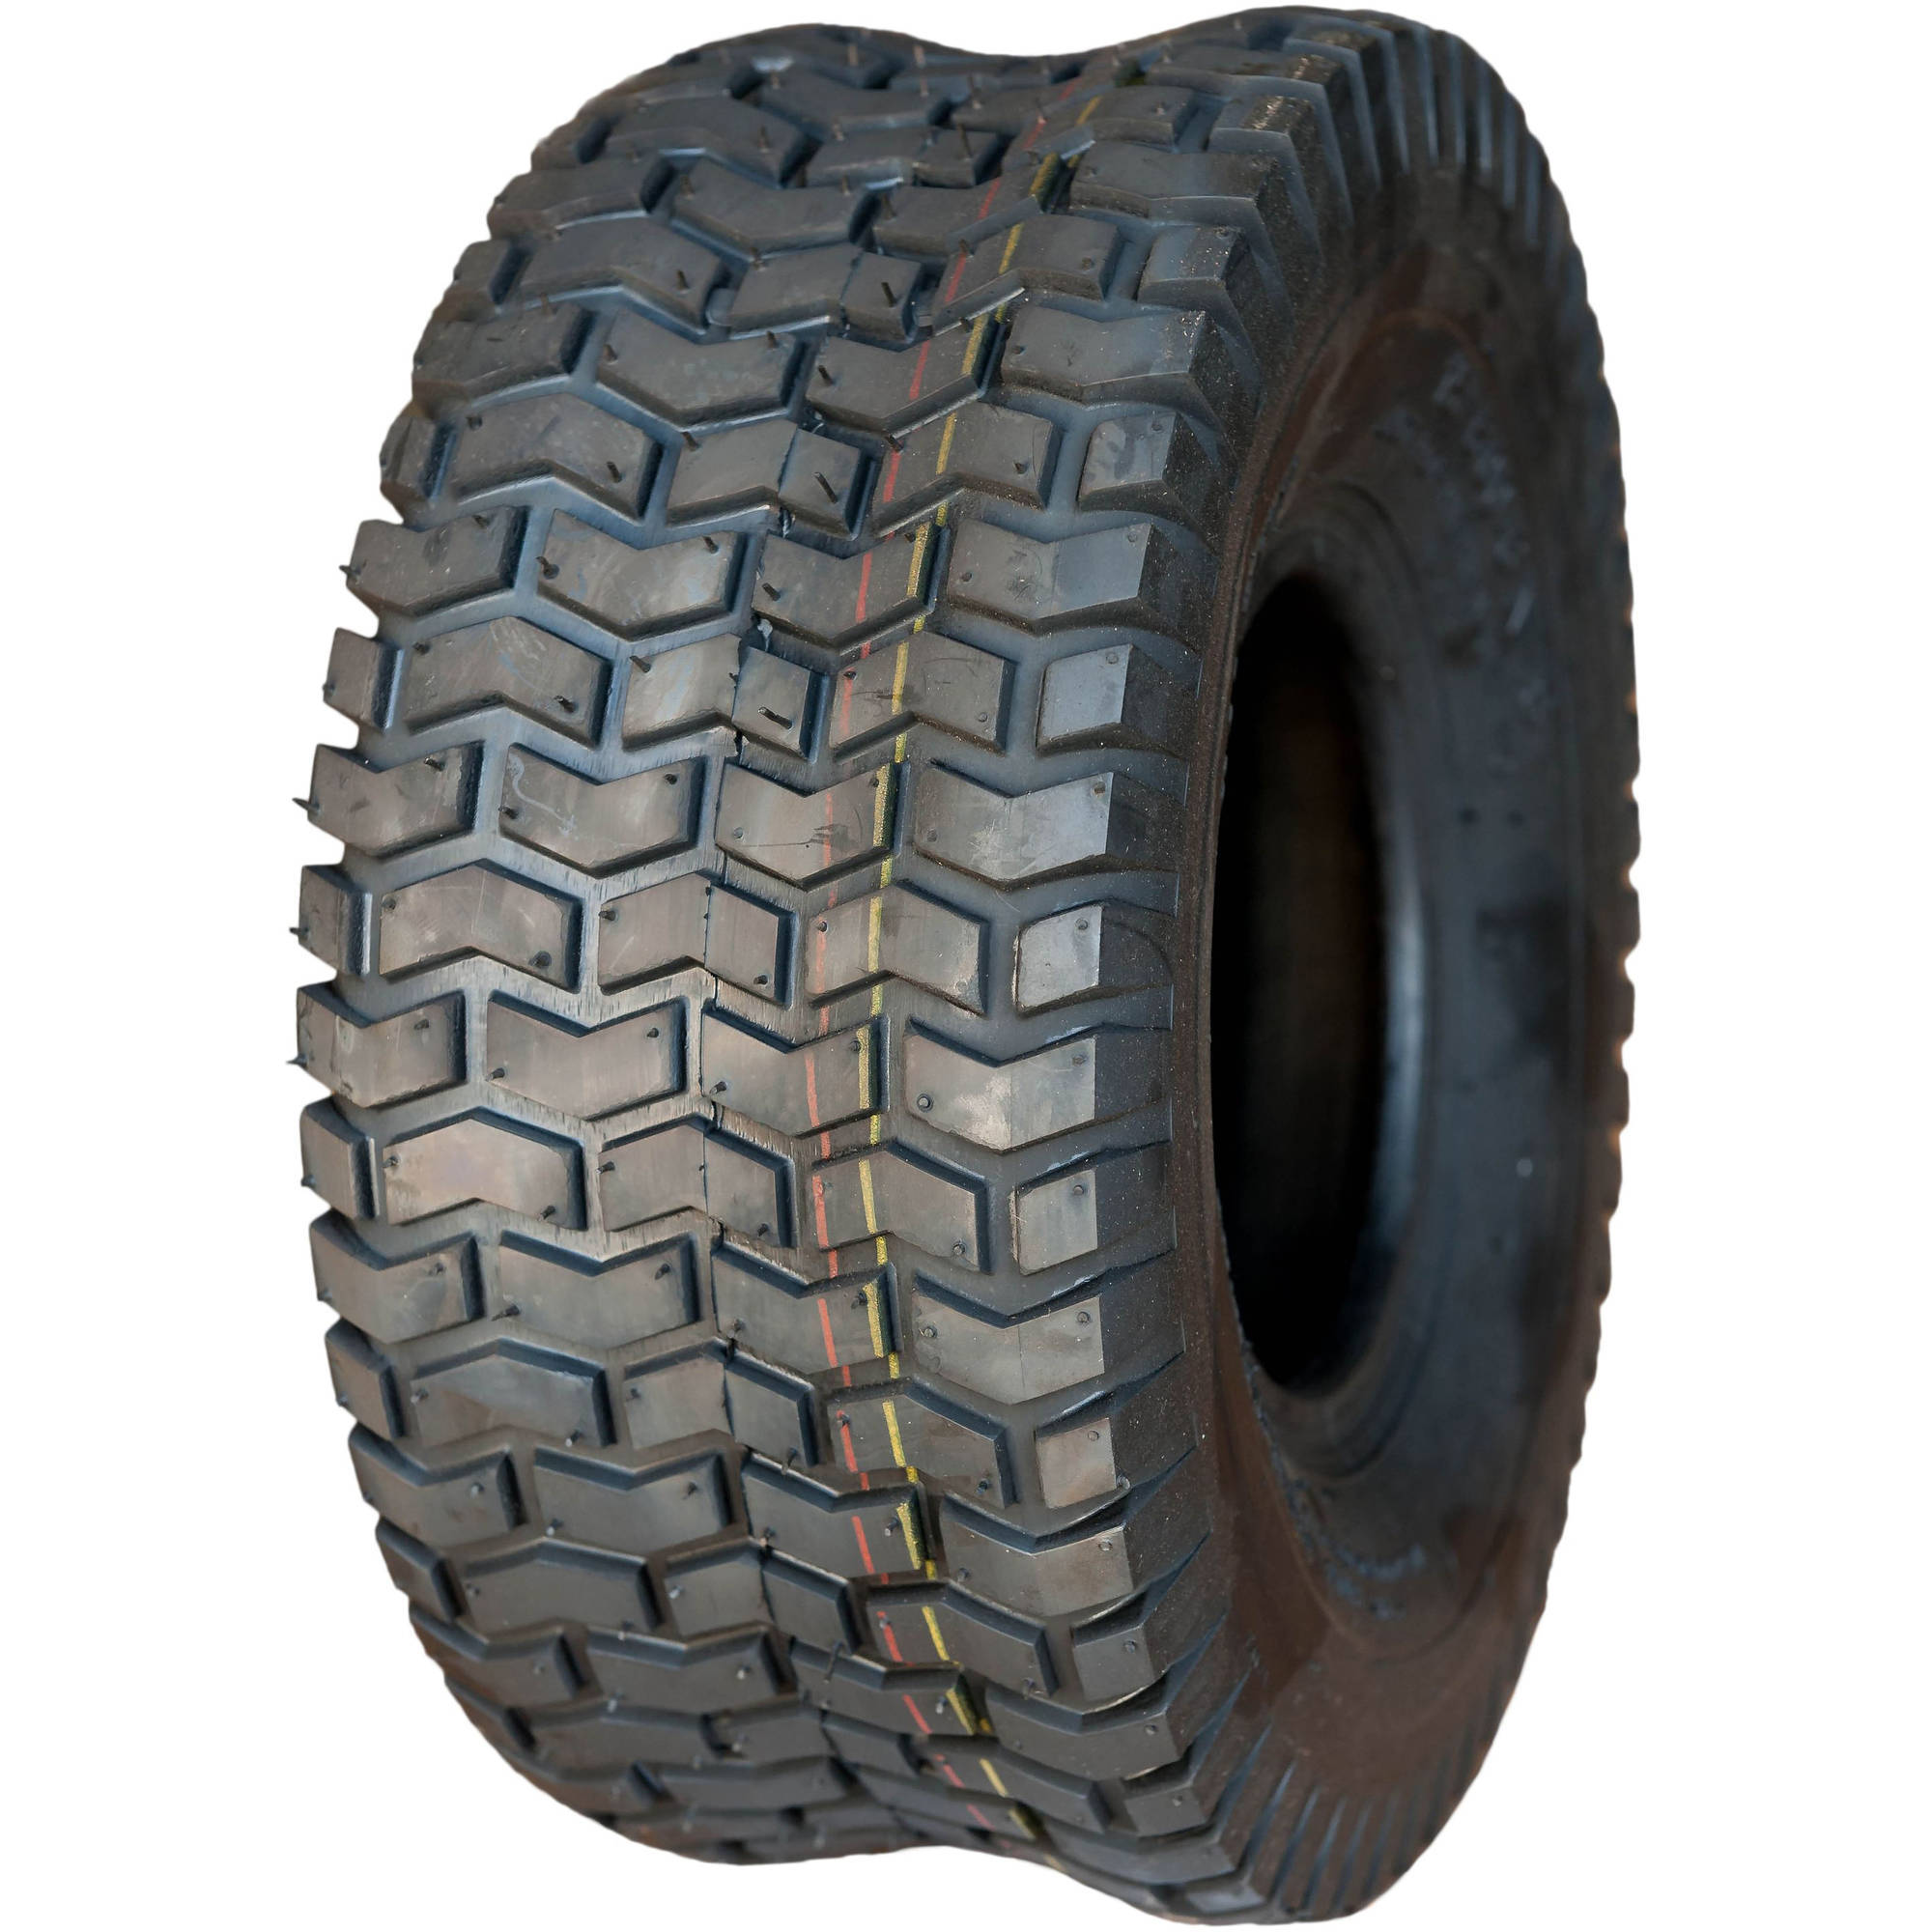 HI-RUN Tire 15x6.00-6 2PR SU12